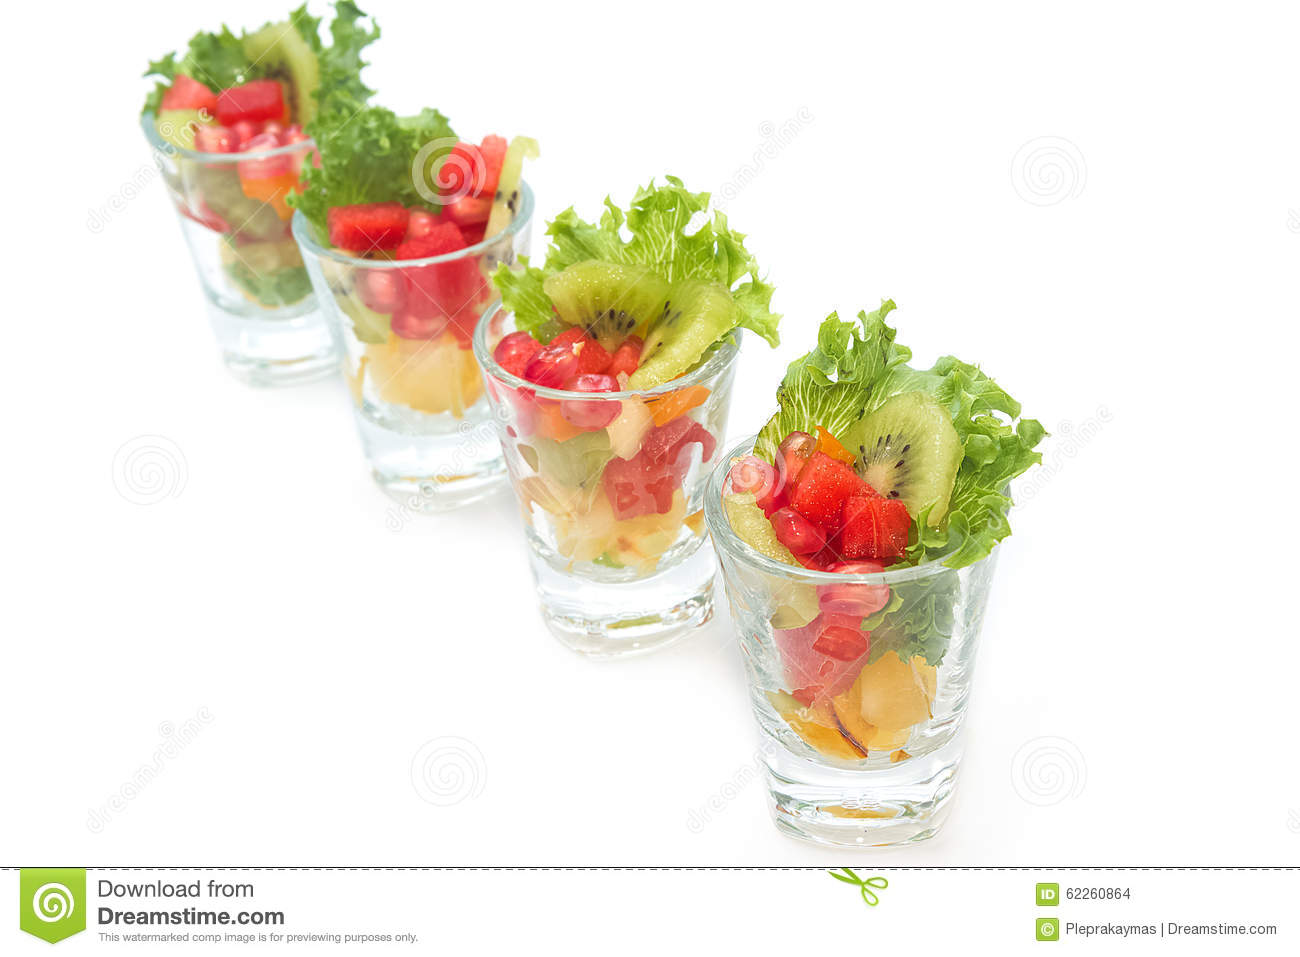 Colorful Fruit Salad In Transparent Glasses Royalty-Free ...